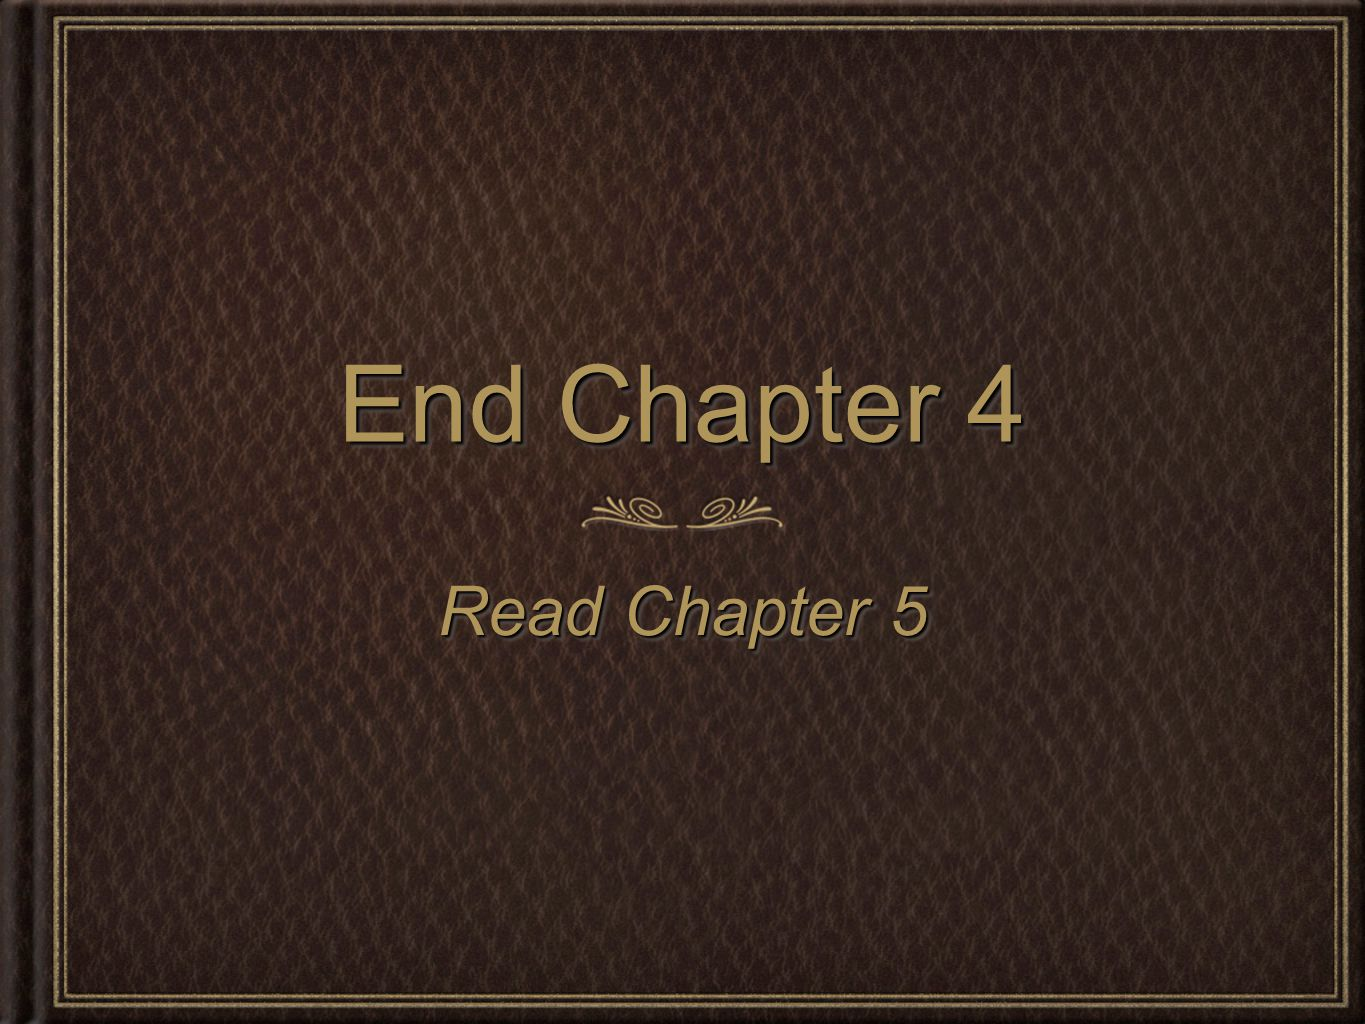 End Chapter 4 Read Chapter 5